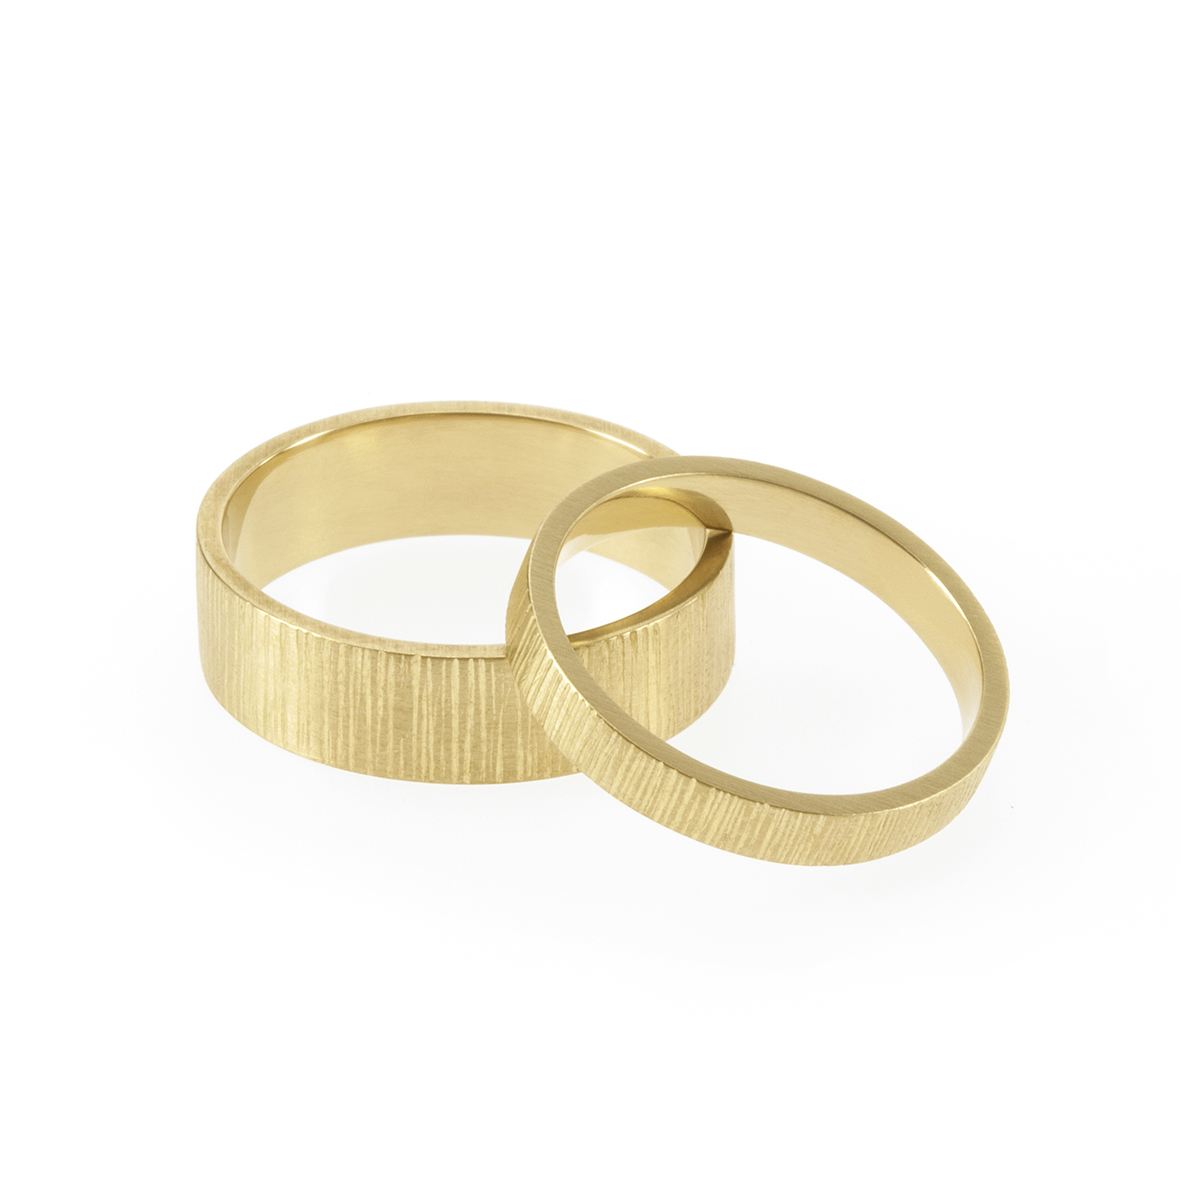 A union of geometry and organic forms, our flat profiled band with hand-carved vertical lines reminiscent of tree bark.